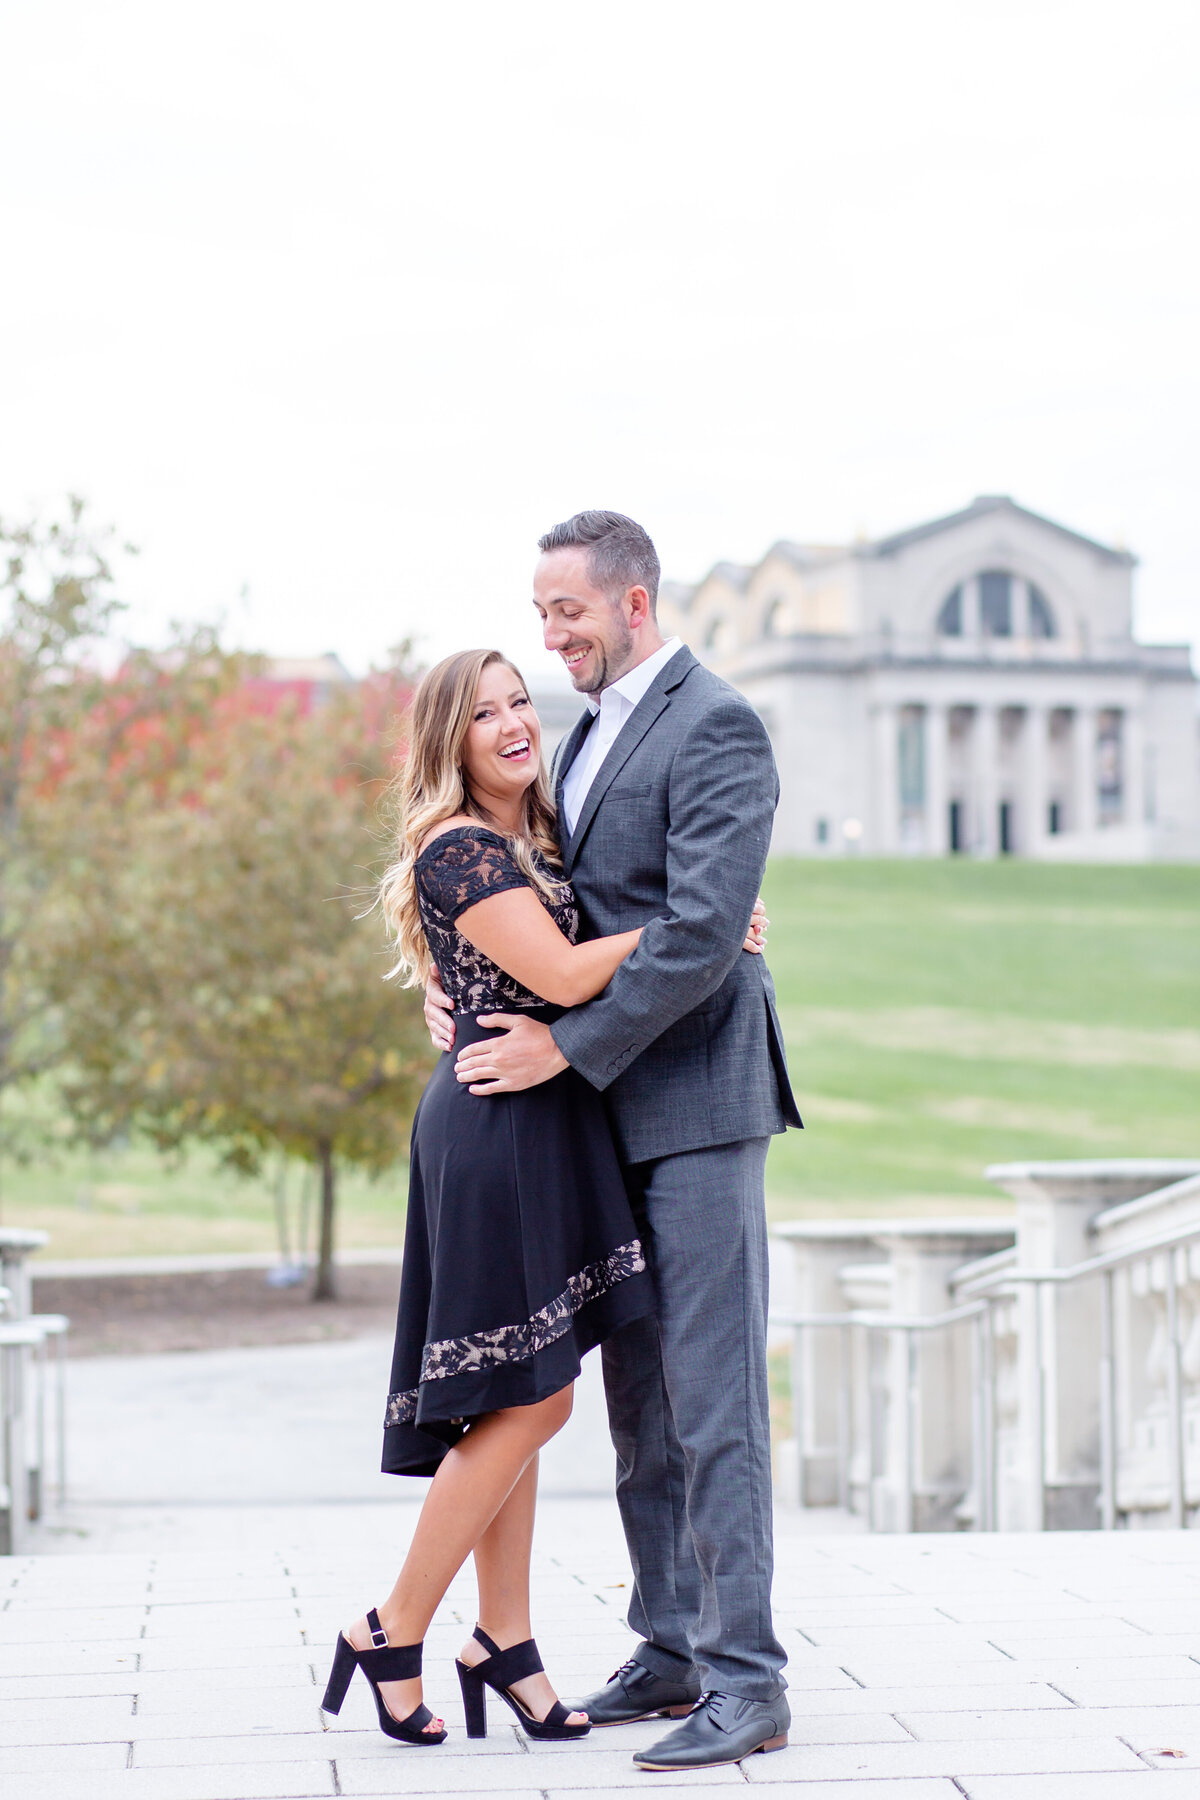 Fall Sunset Engagement  Session with black dress couple laughing on bridge at the bottom of Art Hill  in Forest Park in St. Louis by Amy Britton Photography Photographer in St. Louis